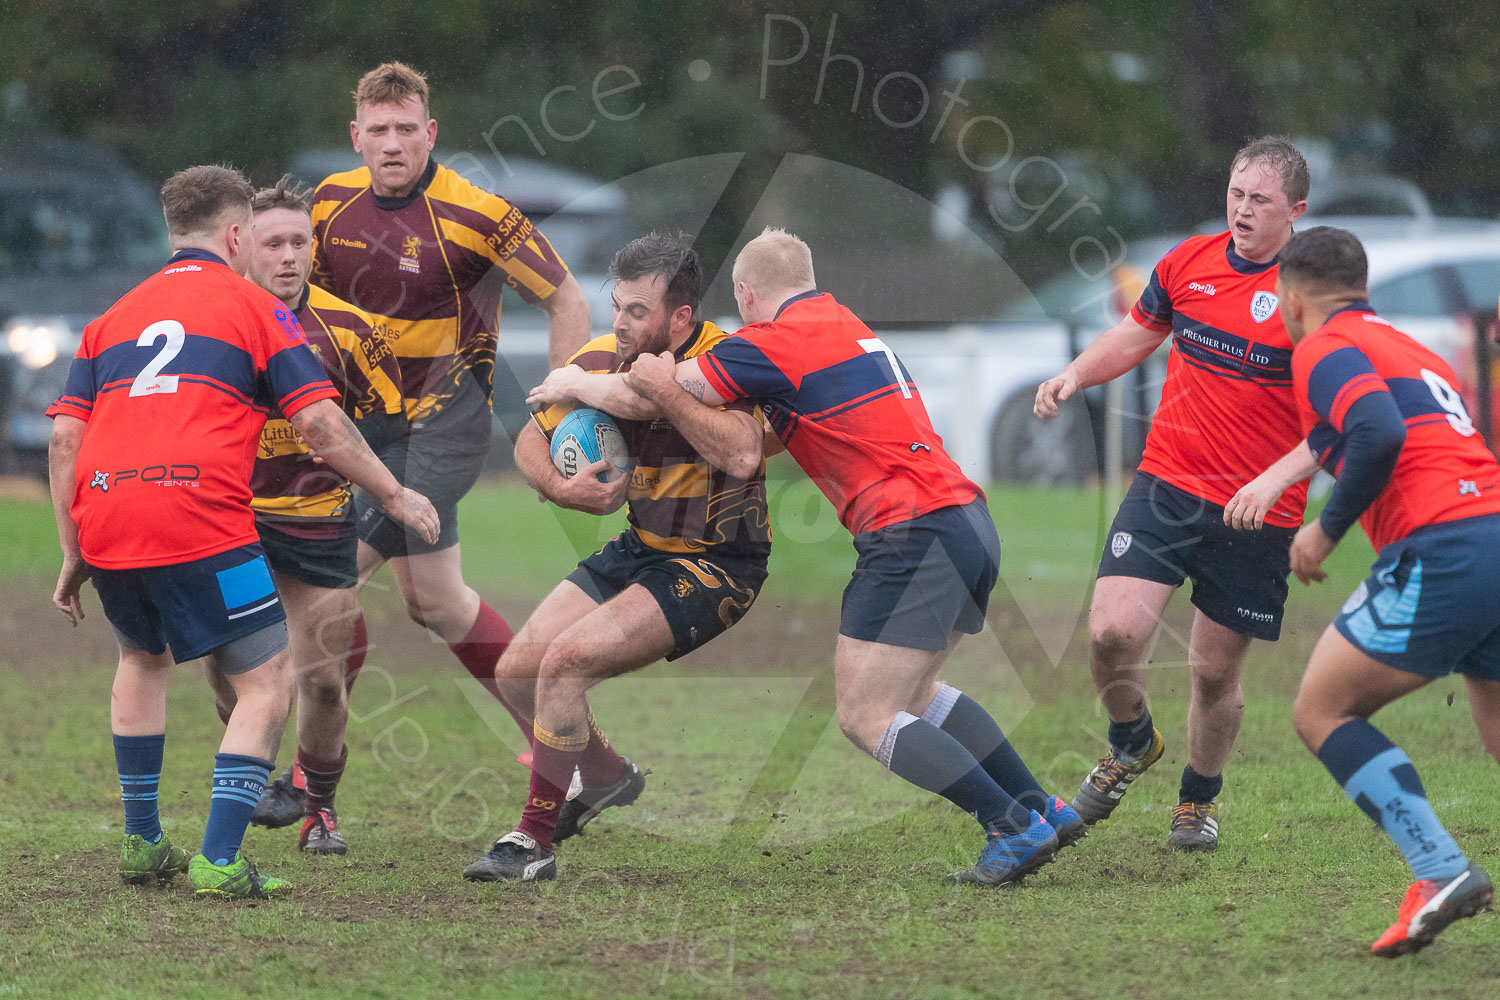 20181027 Amp Extras vs St Neots 2nd XV #2713